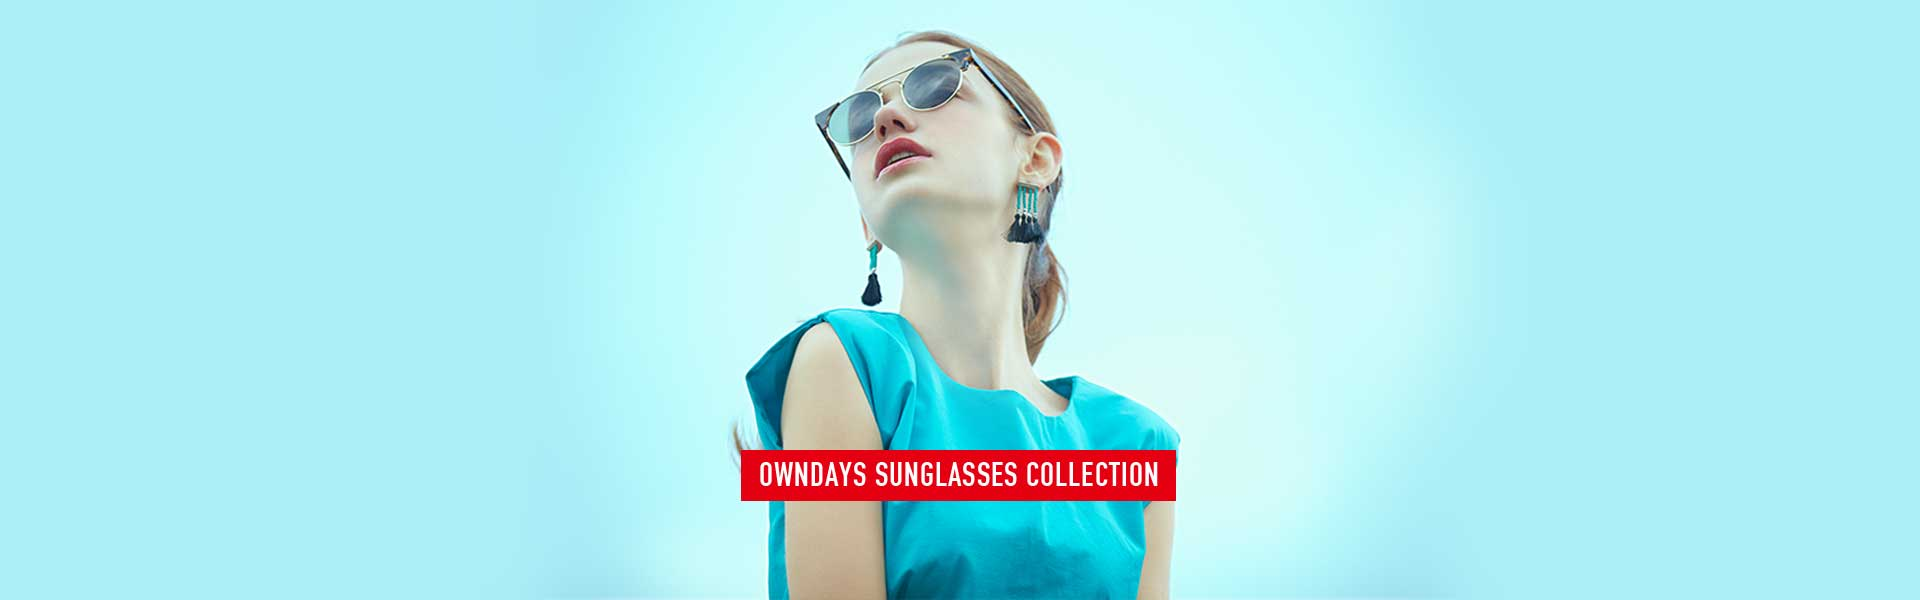 OWNDAYS SUNGLASSES COLLECTION - Early 2016